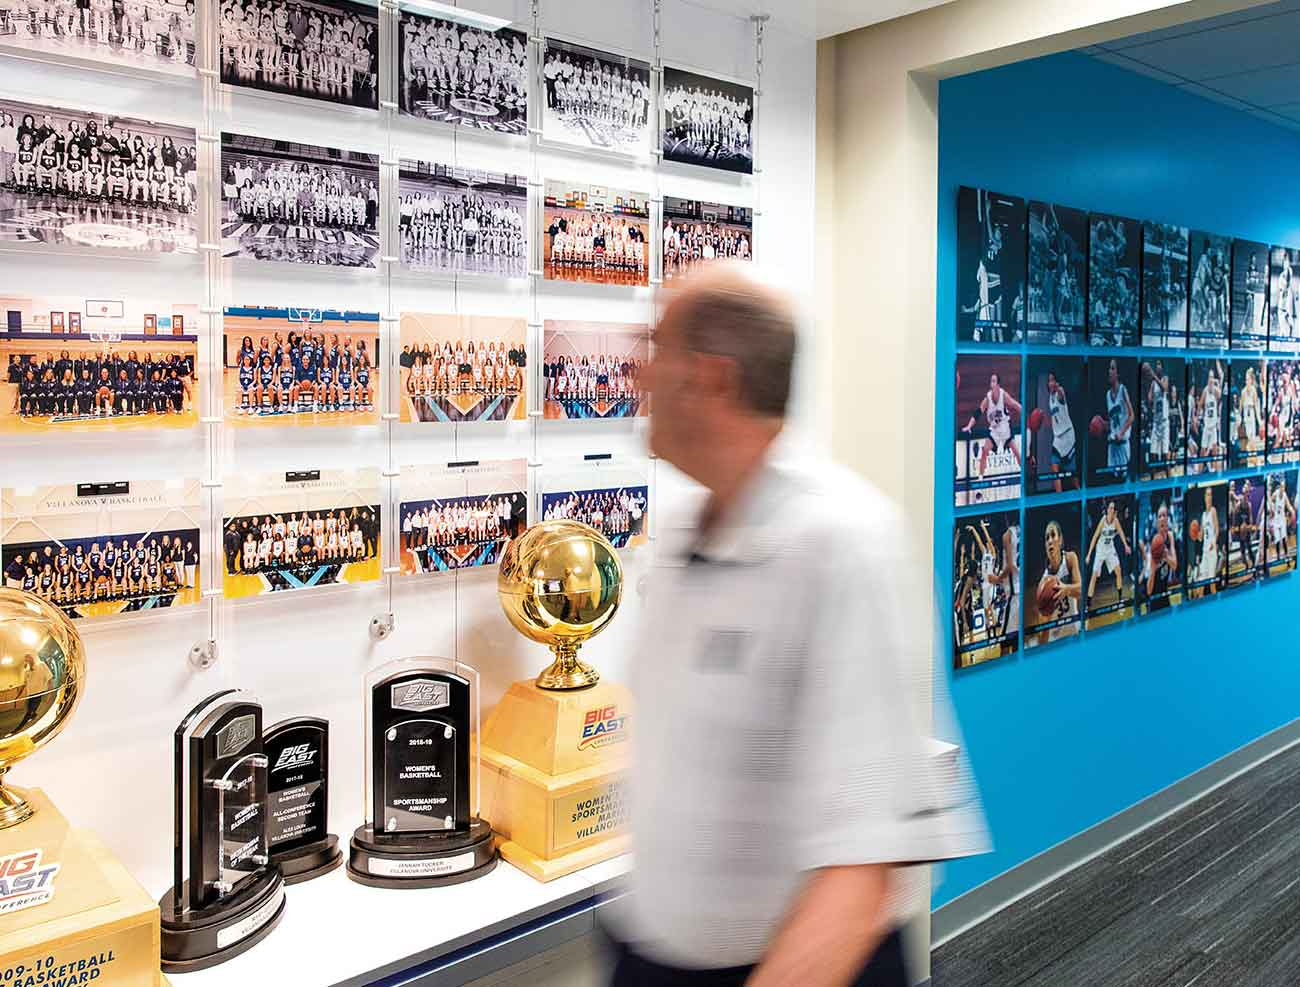 Harry Perretta walks through a hallway of trophies and team photos in Finneran Pavilion